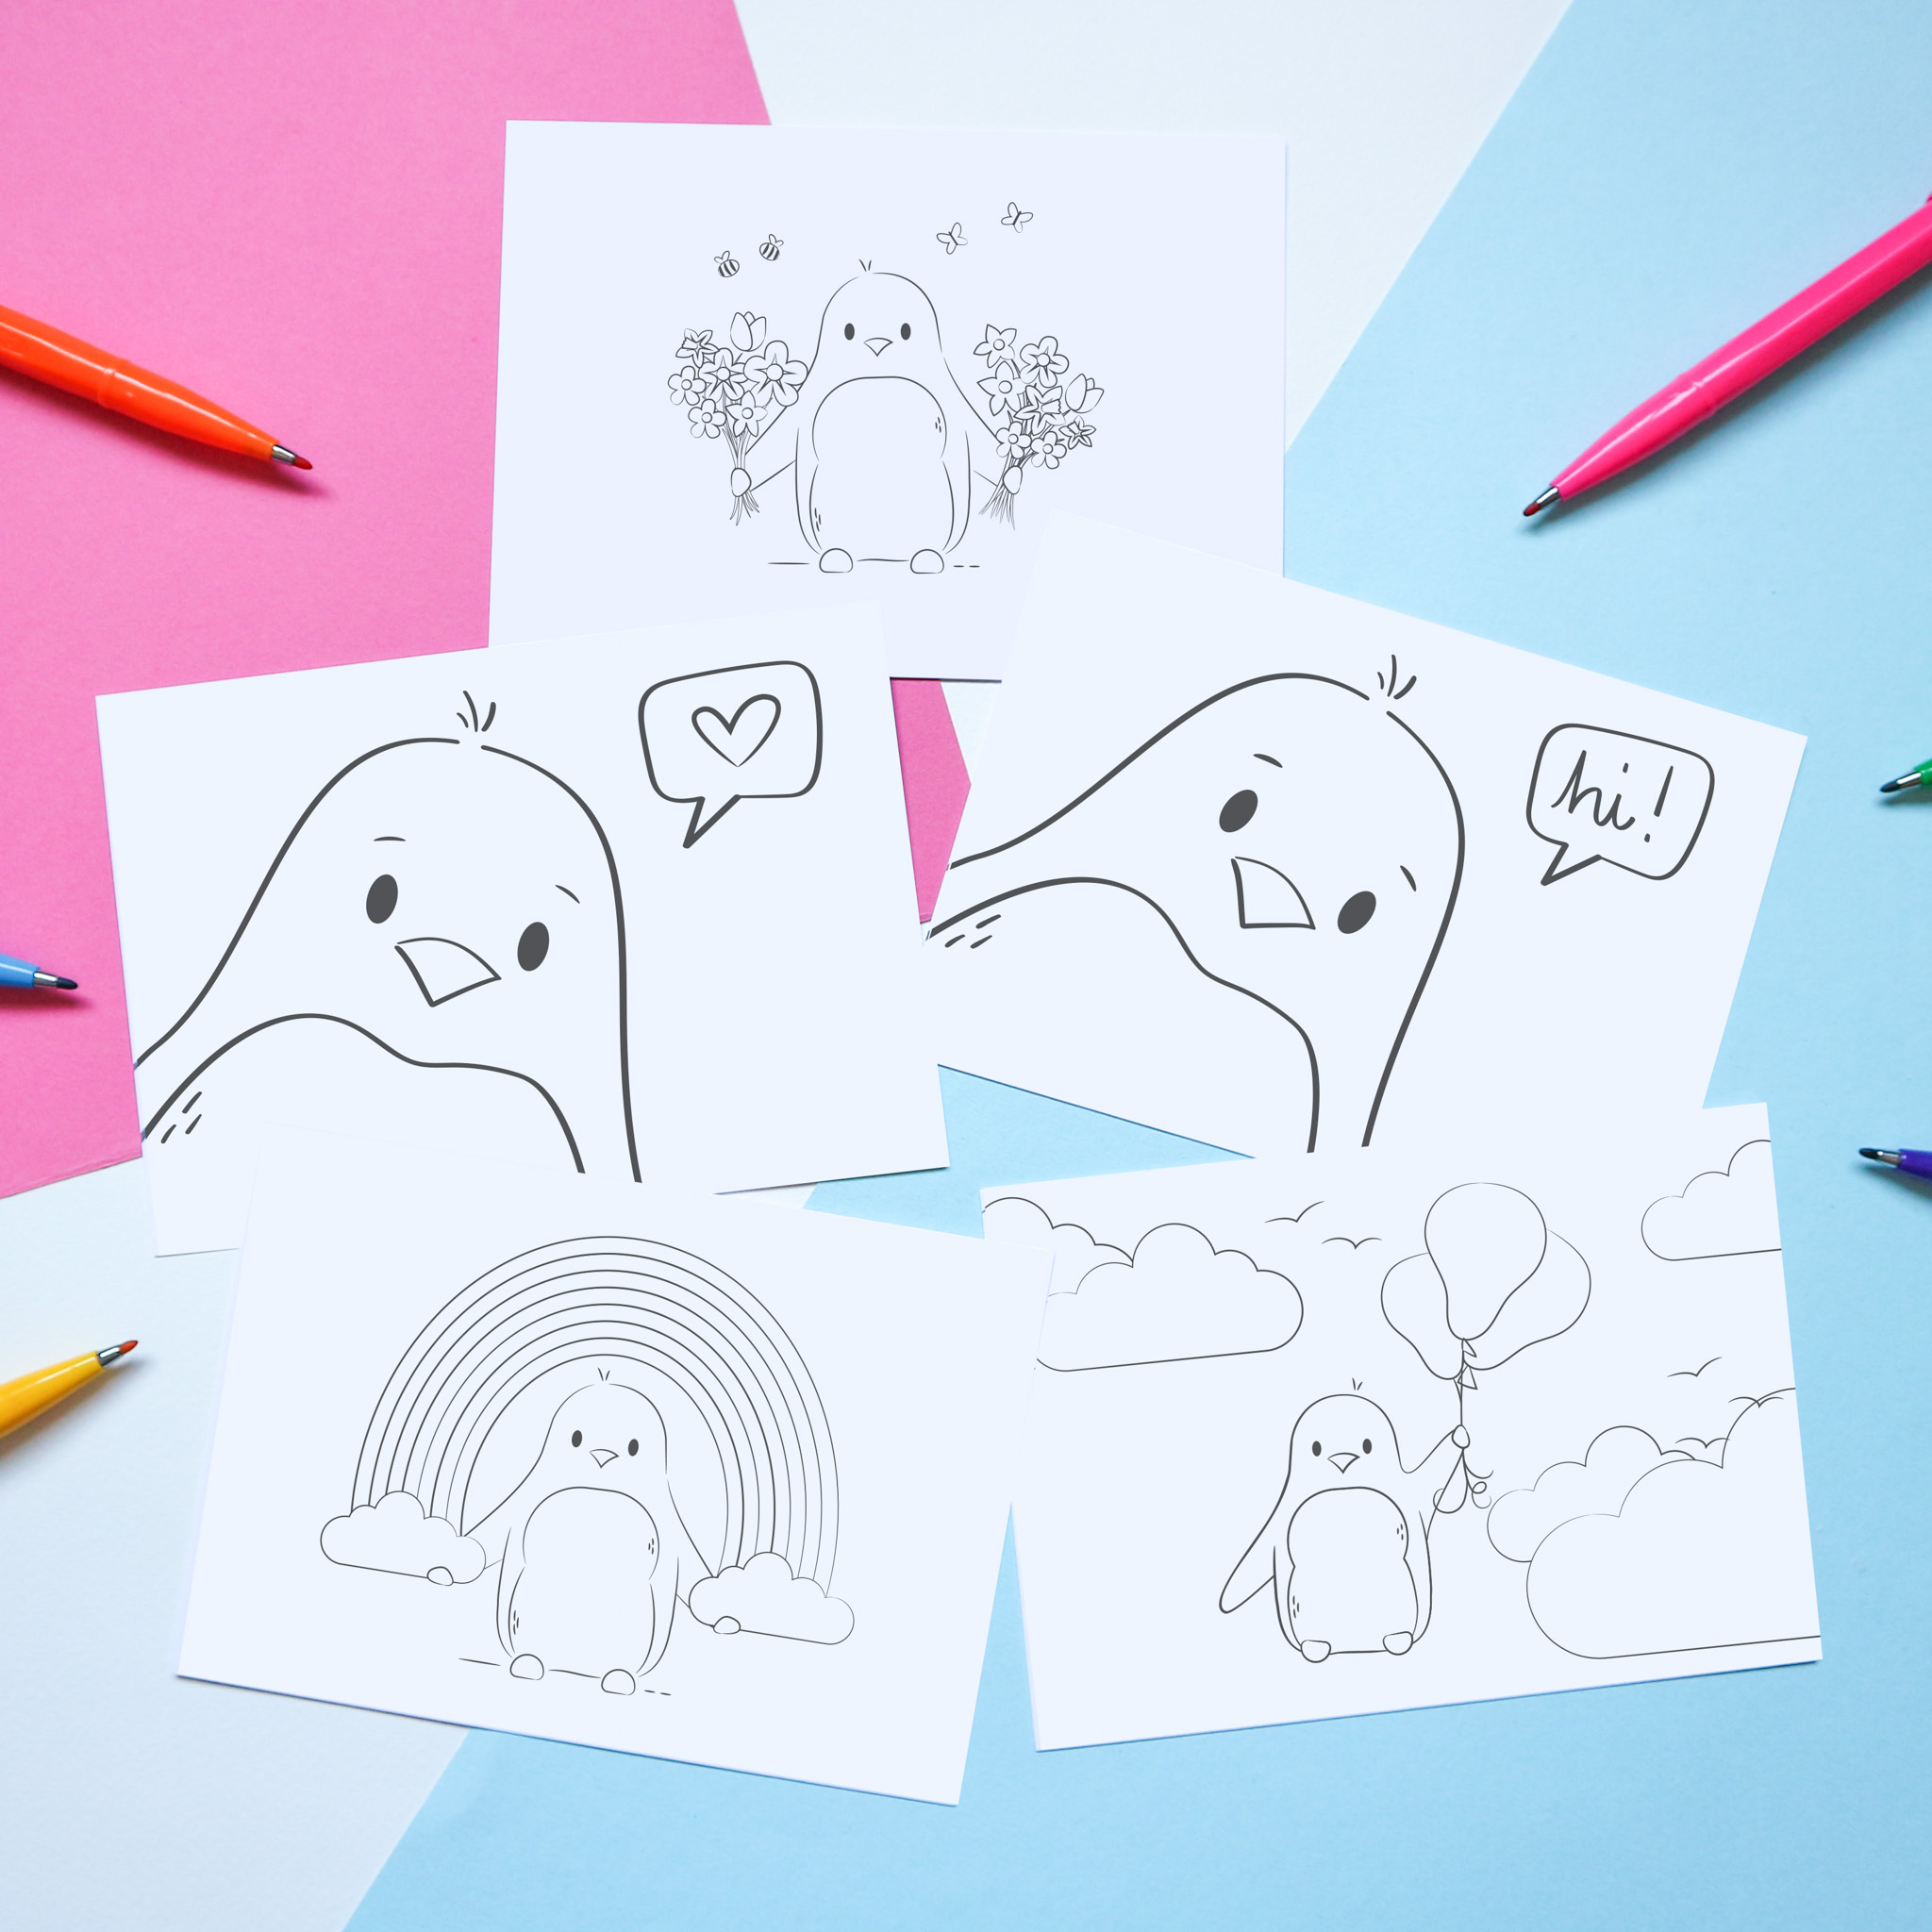 """A selection of five illustrated postcards which are un-coloured, to be coloured in by you or the recipient. The designs are as follows: 1 shows a penguin holding a rainbow, 2 shows a penguin with a speech bubble saying """"hi,"""" 3 shows a penguin with a speech bubble with heart inside, 4 shows a penguin holding two bunches of flowers, and 5 shows a penguin floating away with a bunch of balloons. The postcards are styled with a few colouring pens."""